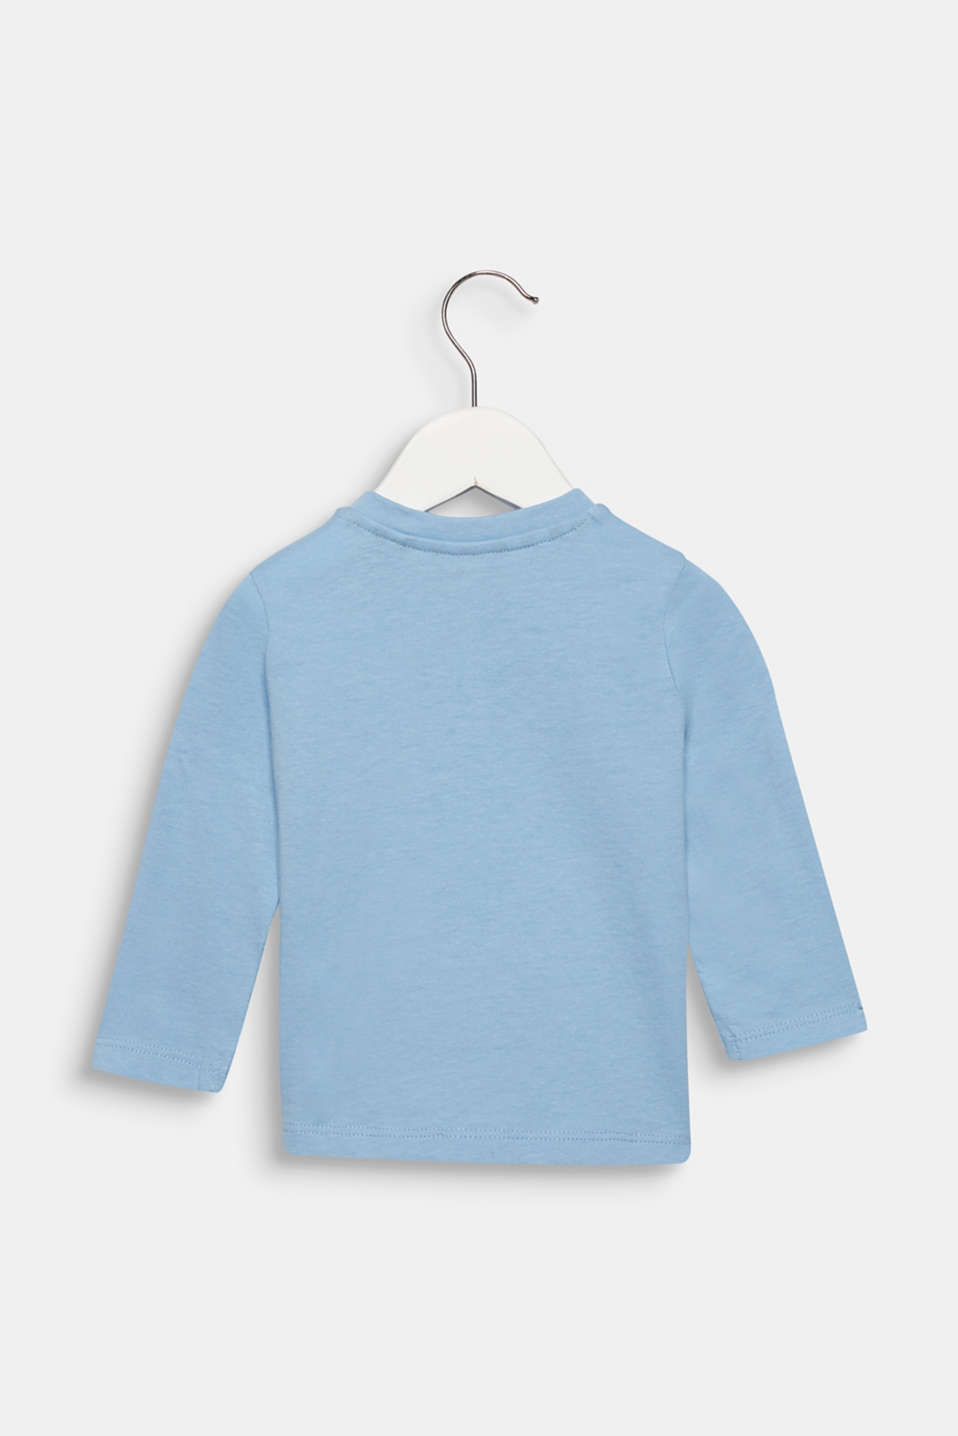 Long sleeve top with a breast pocket and print, cotton, LCLIGHT BLUE, detail image number 1